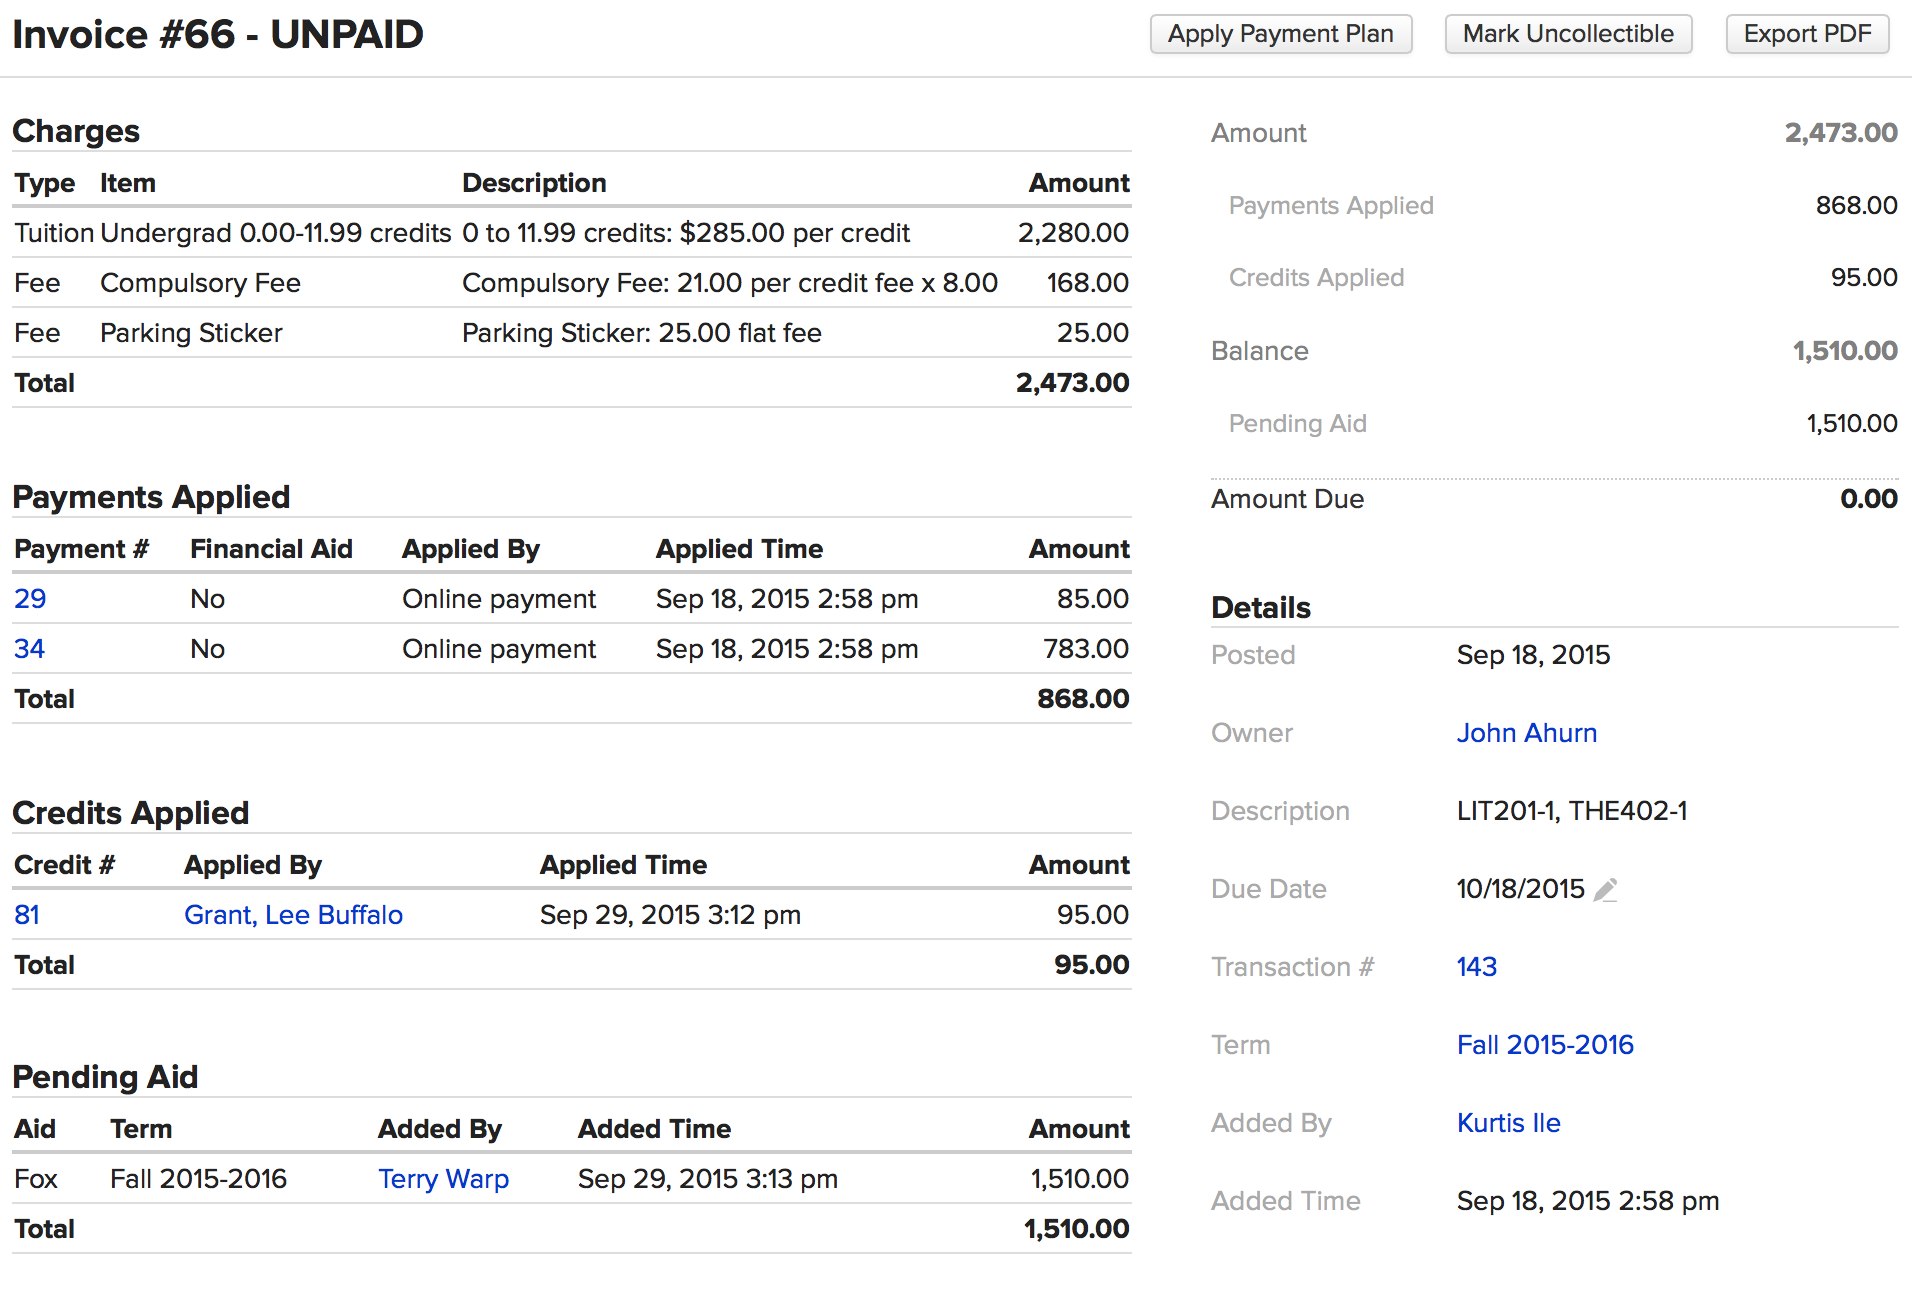 Darkfaderus  Winsome Invoices  Populi Knowledge Base With Fascinating Invoice Pages With Amazing Create A Receipt Also Macys Receipt In Addition Target Receipt And Toys R Us Return Without Receipt As Well As Walmart Return No Receipt Additionally Receipt Number From Supportpopuliwebcom With Darkfaderus  Fascinating Invoices  Populi Knowledge Base With Amazing Invoice Pages And Winsome Create A Receipt Also Macys Receipt In Addition Target Receipt From Supportpopuliwebcom